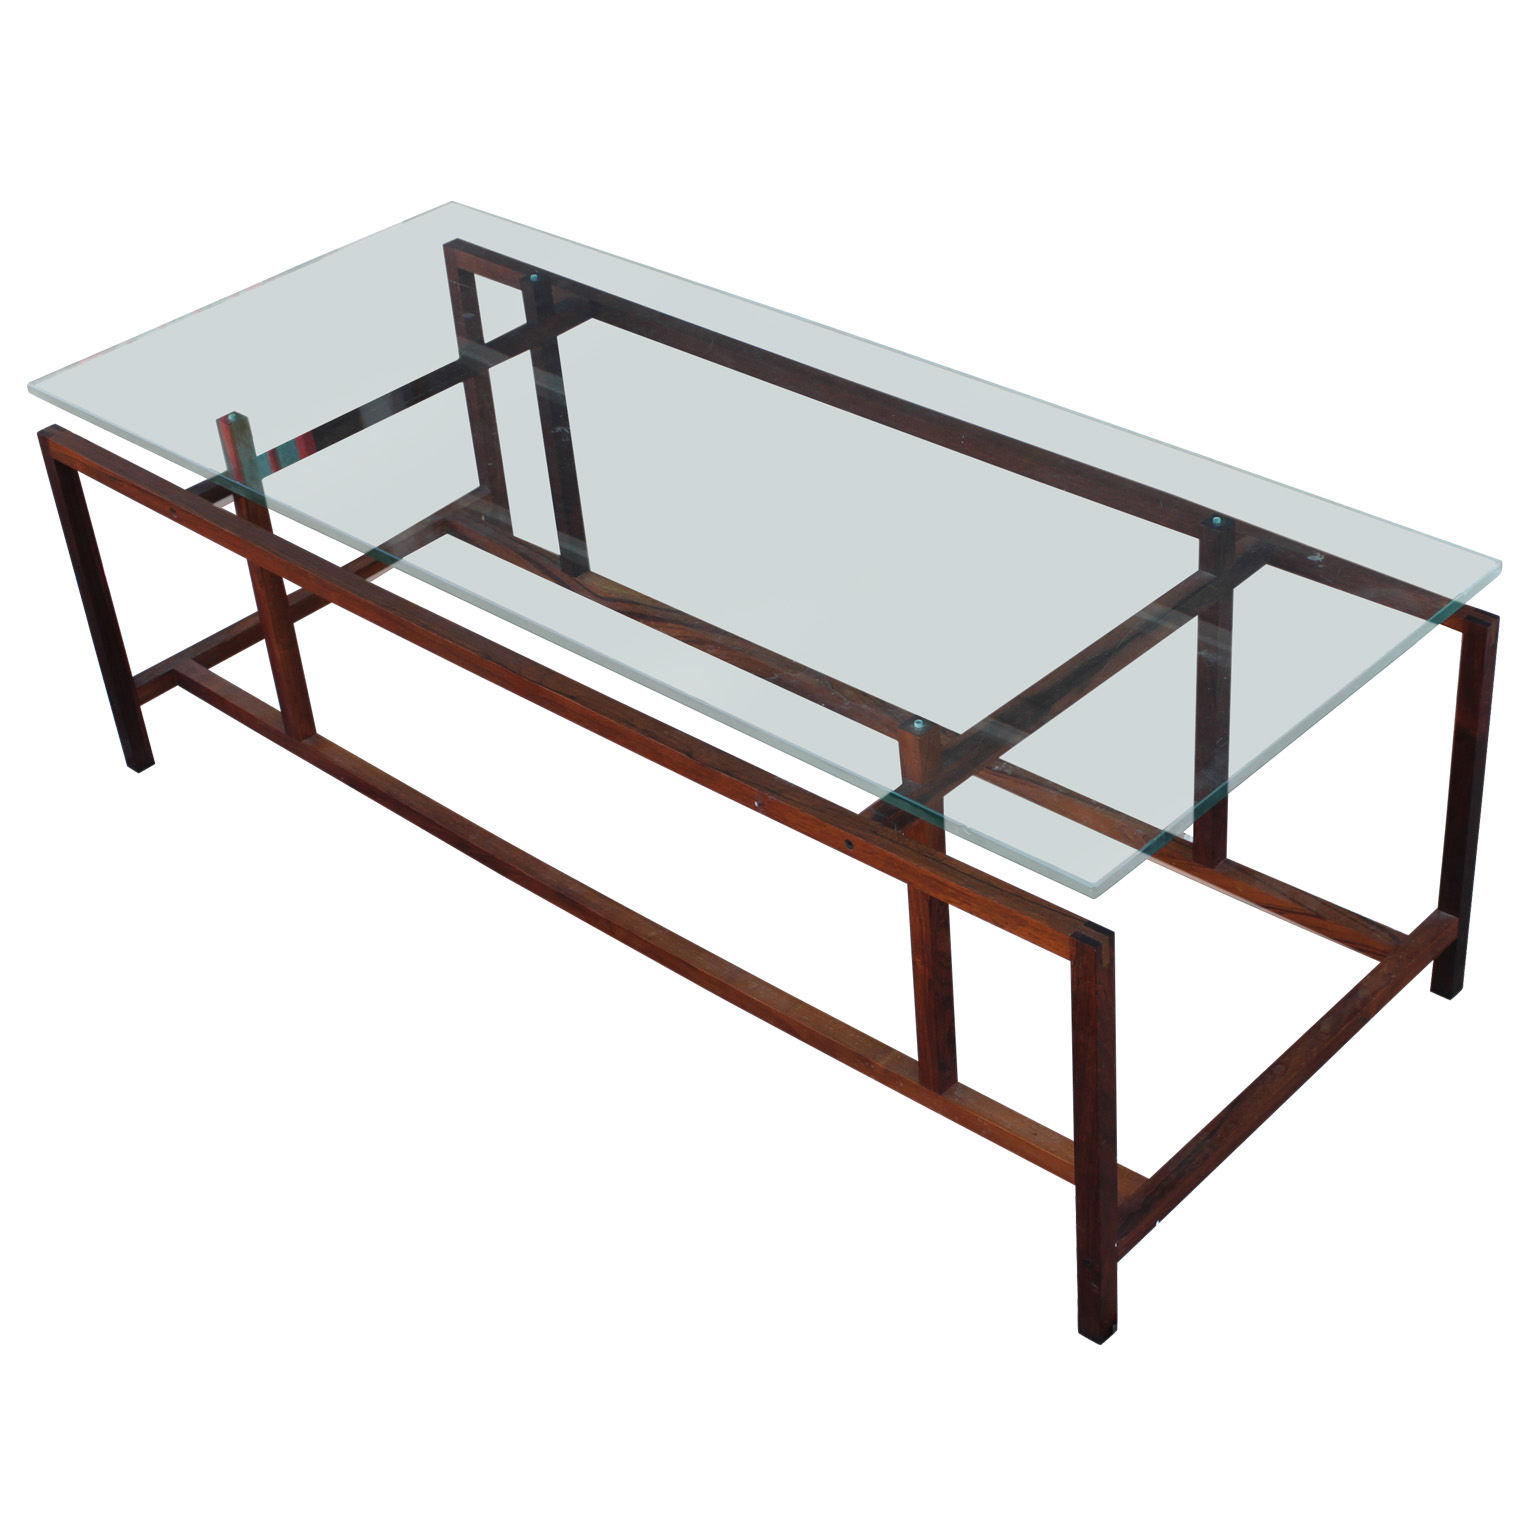 Architectural henning norgaard rosewood and glass coffee for Architectural coffee table